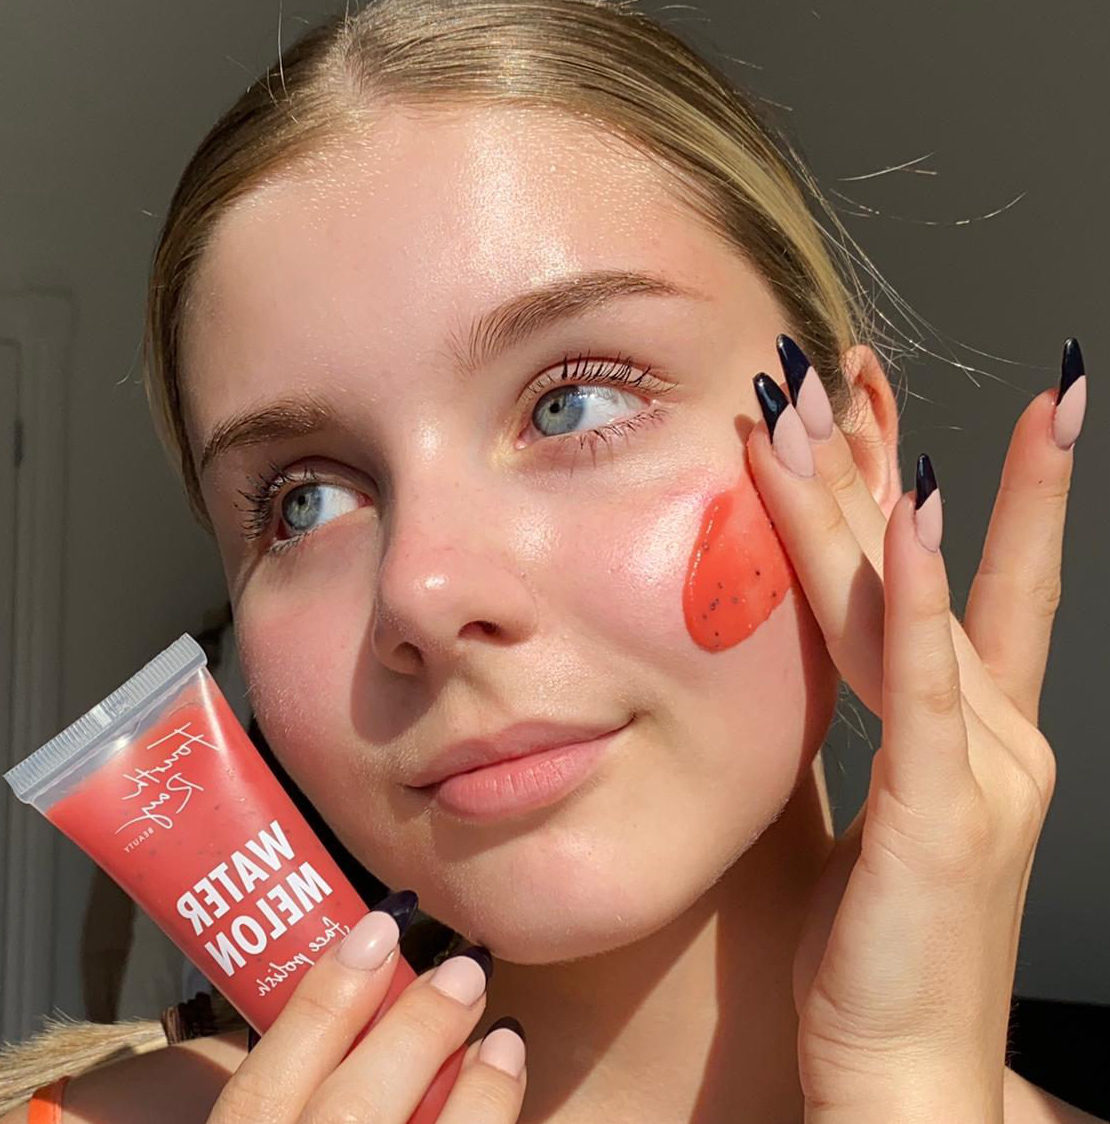 leaves skin softer, smoother, and healthier-looking🍉❤️ Watermelon face polish gently buffs away dead skin with super fine Sugar & Poppy Seeds✨ Do you exfoliate your skin? - 📸:glamwithdarcey https://t.co/LaLCvhV29B